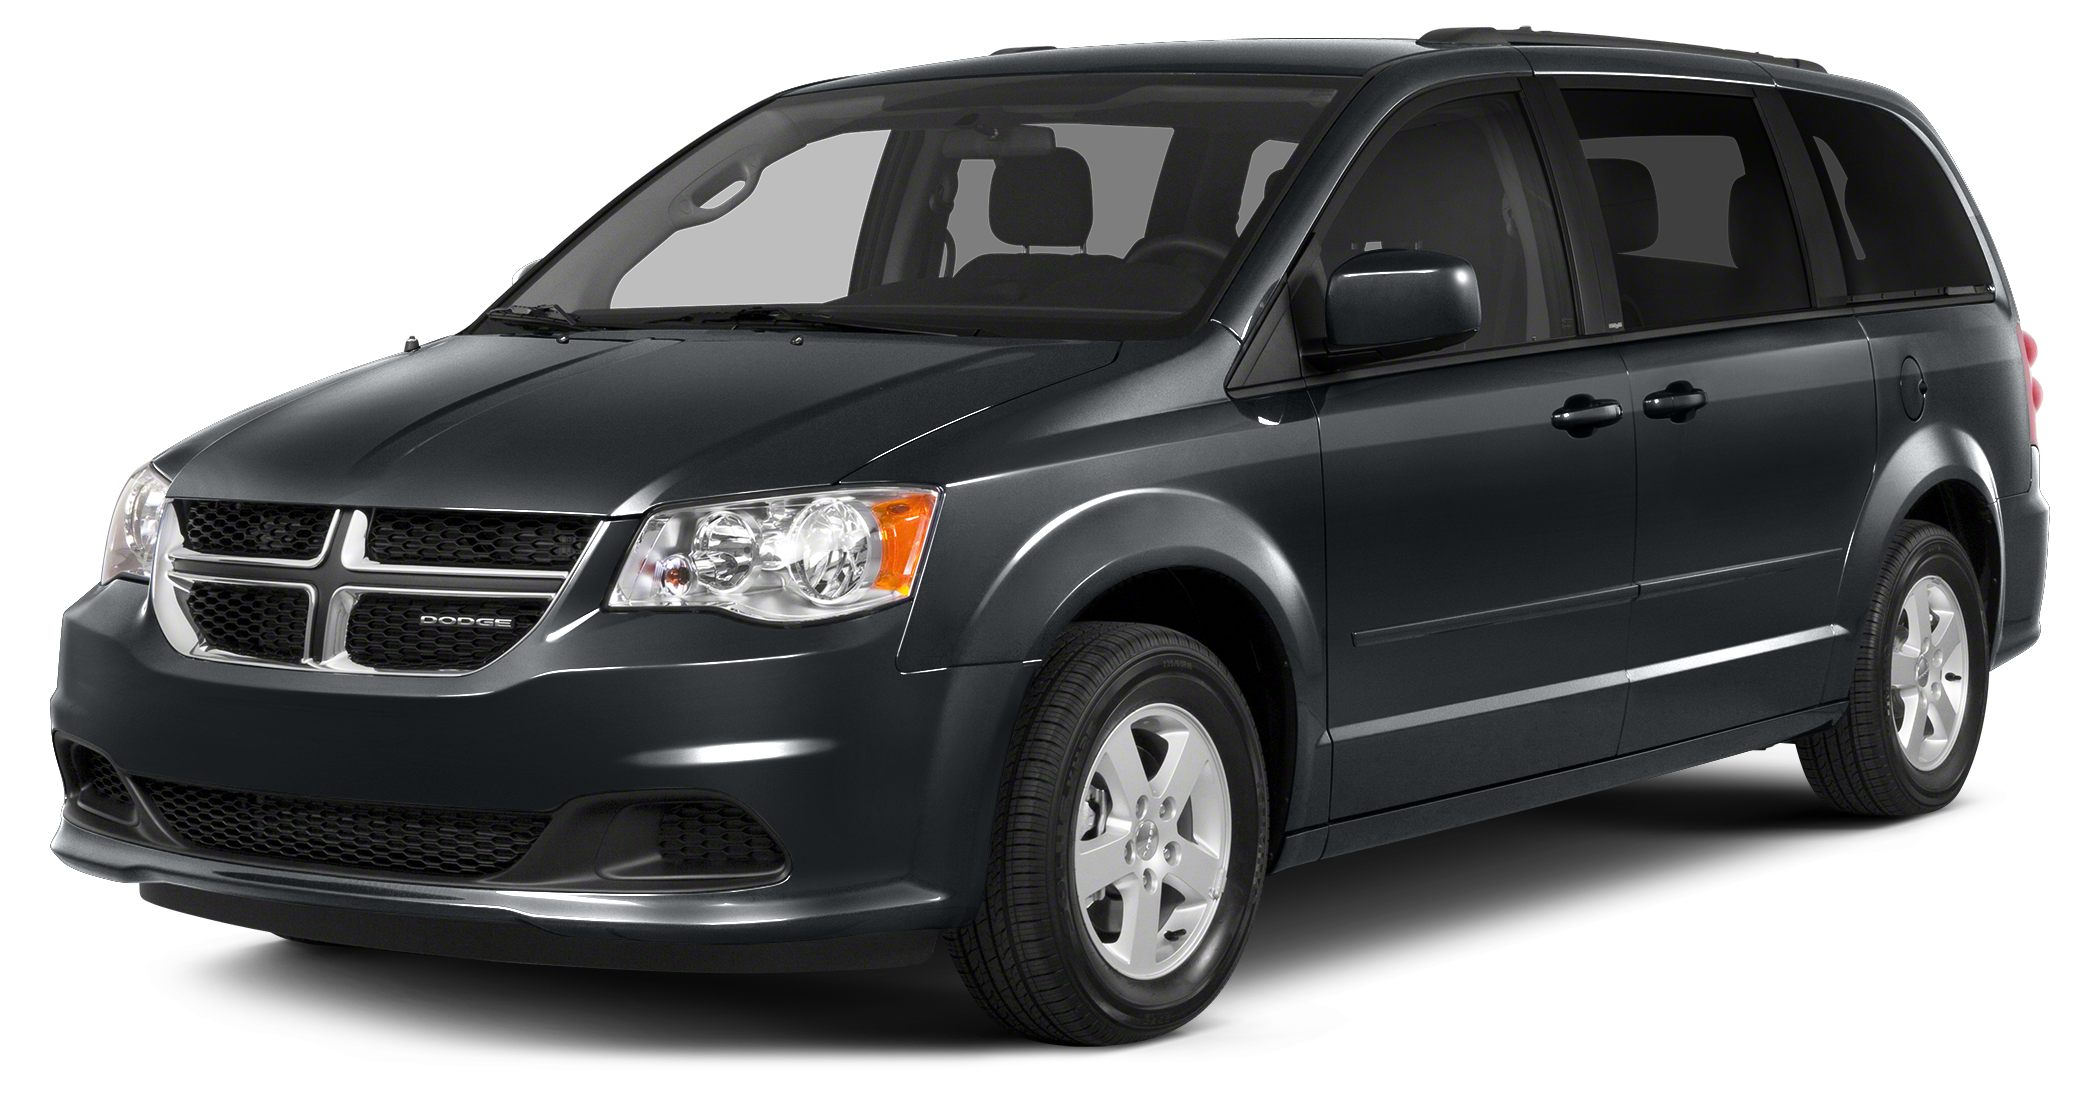 2016 Dodge Grand Caravan AVPSE LOWEST PRICES OF THE YEAR ARE HERE NOW LIMITED TIME OFFER300